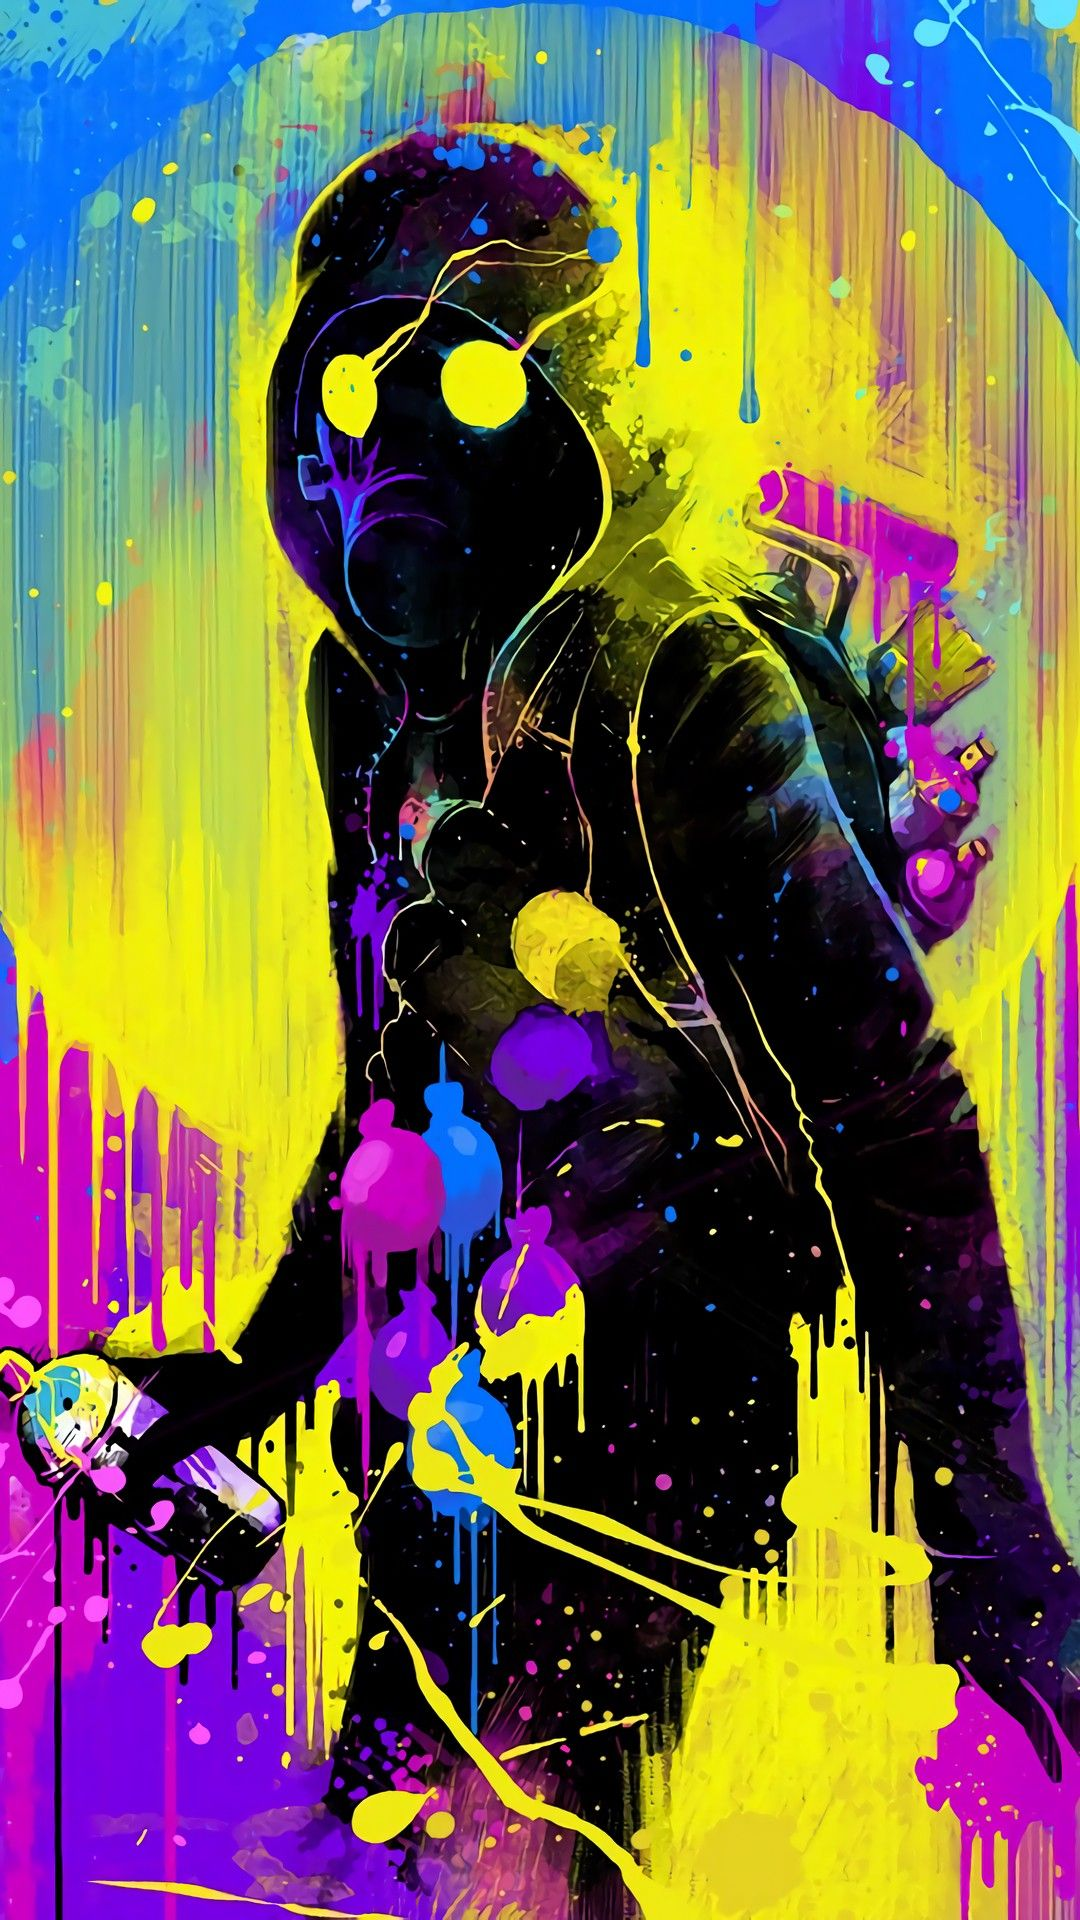 Pin By My Info On Hd Wallpapers Graffiti Wallpaper Art Wallpaper Simpsons Art